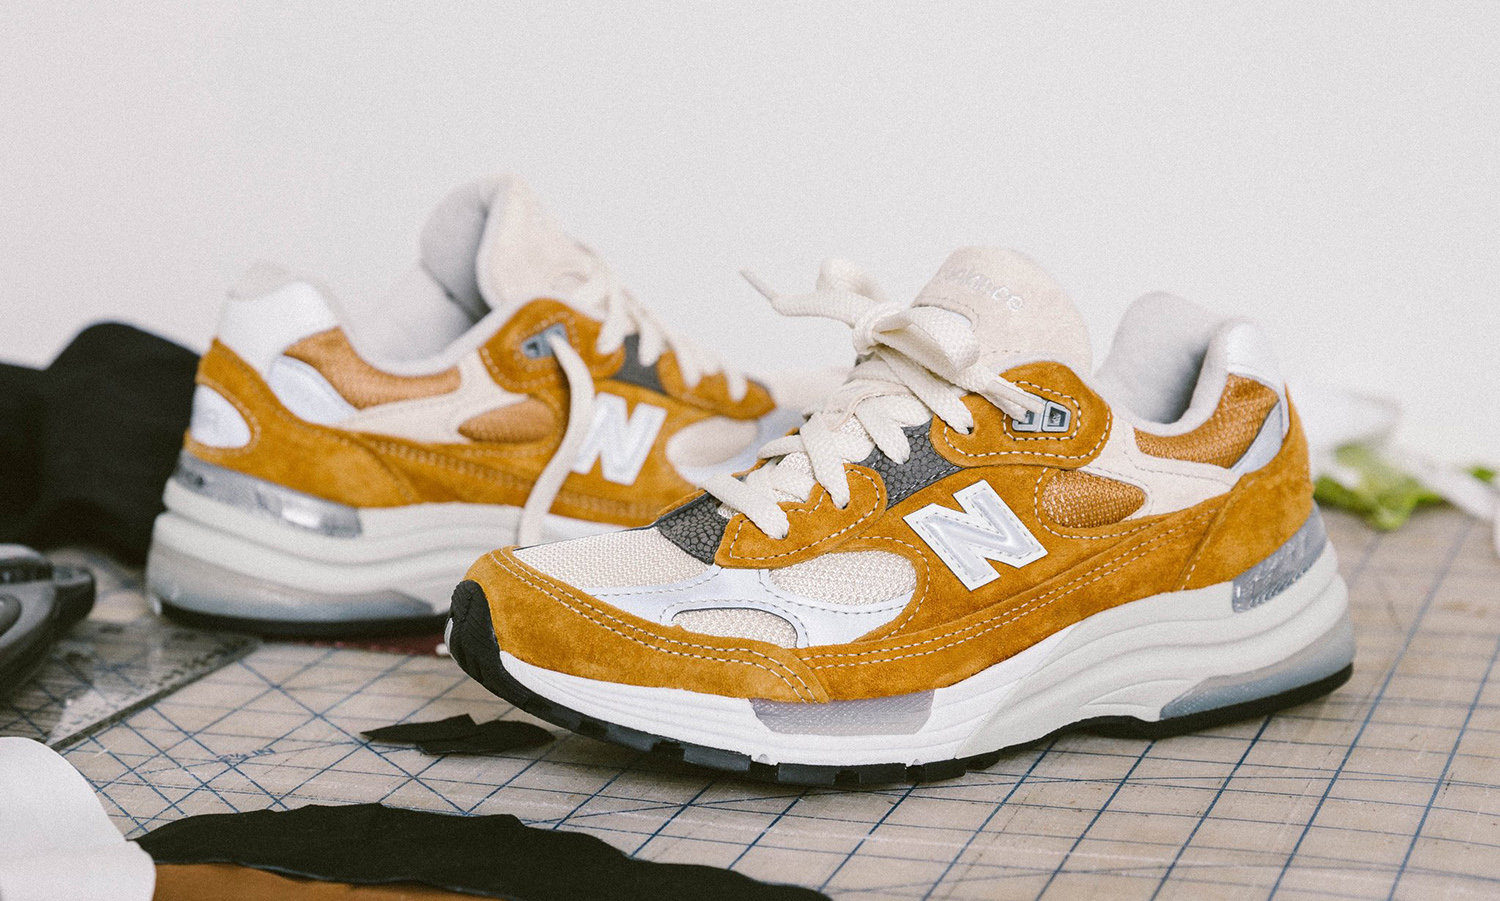 Packer x New Balance 992 发售日期公布